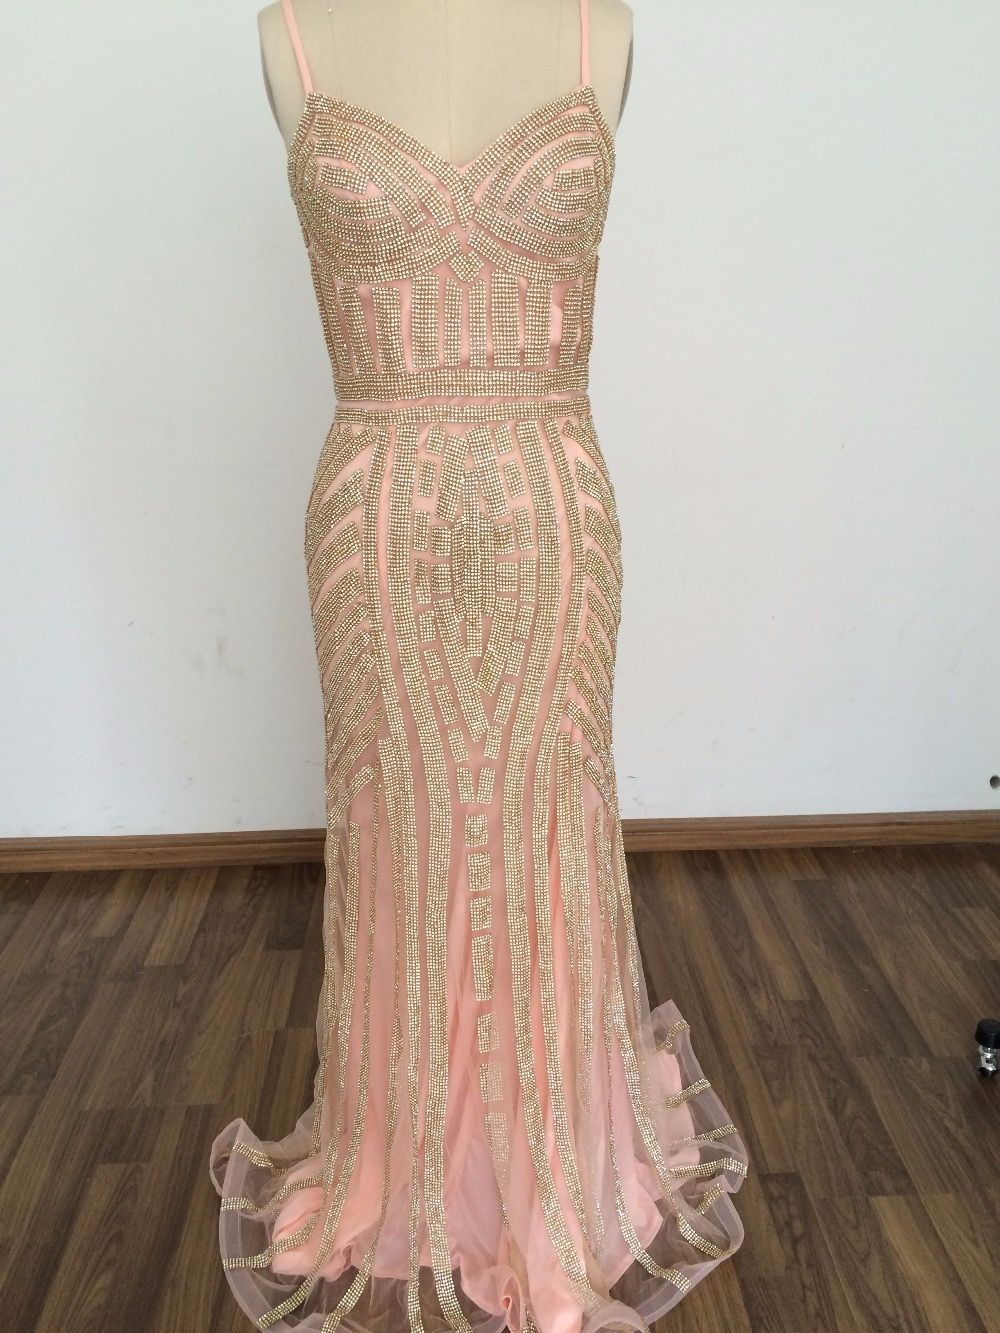 In Stock Mermaid Evening Dresses Crystal Beads Formal Party Gowns with Spaghetti  Strap Long robe de soiree Hot Sale 2017 free shipping worldwide 118c6e7d224b